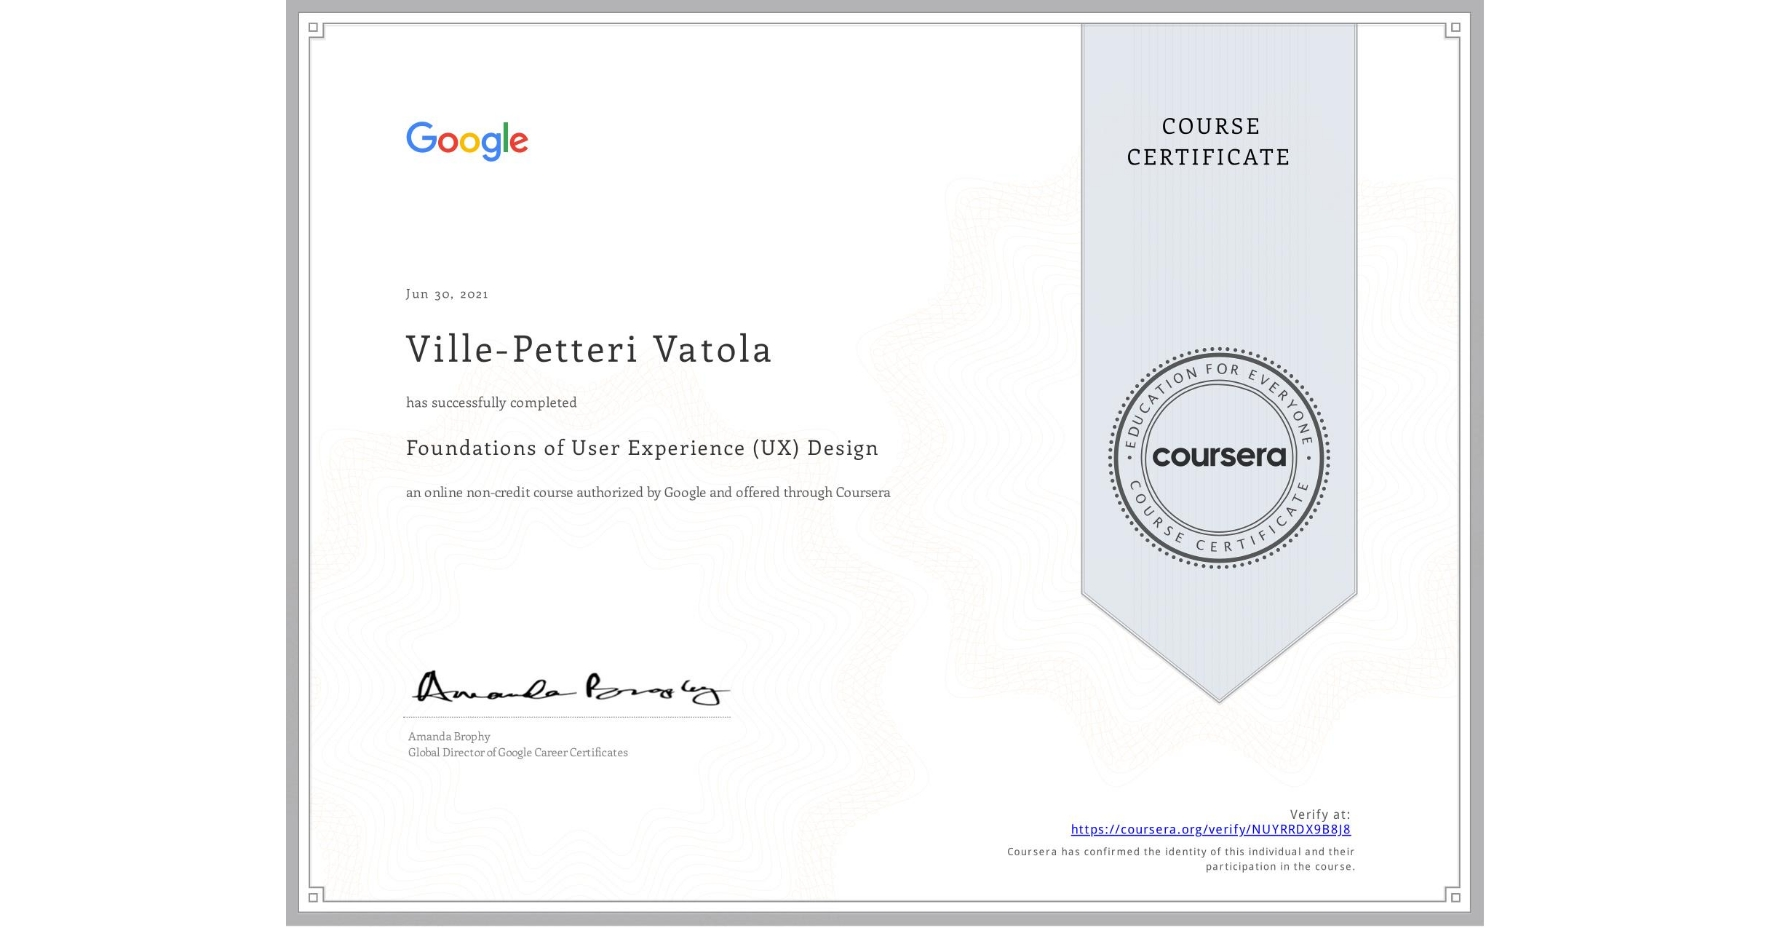 View certificate for Ville-Petteri Vatola, Foundations of User Experience (UX) Design, an online non-credit course authorized by Google and offered through Coursera